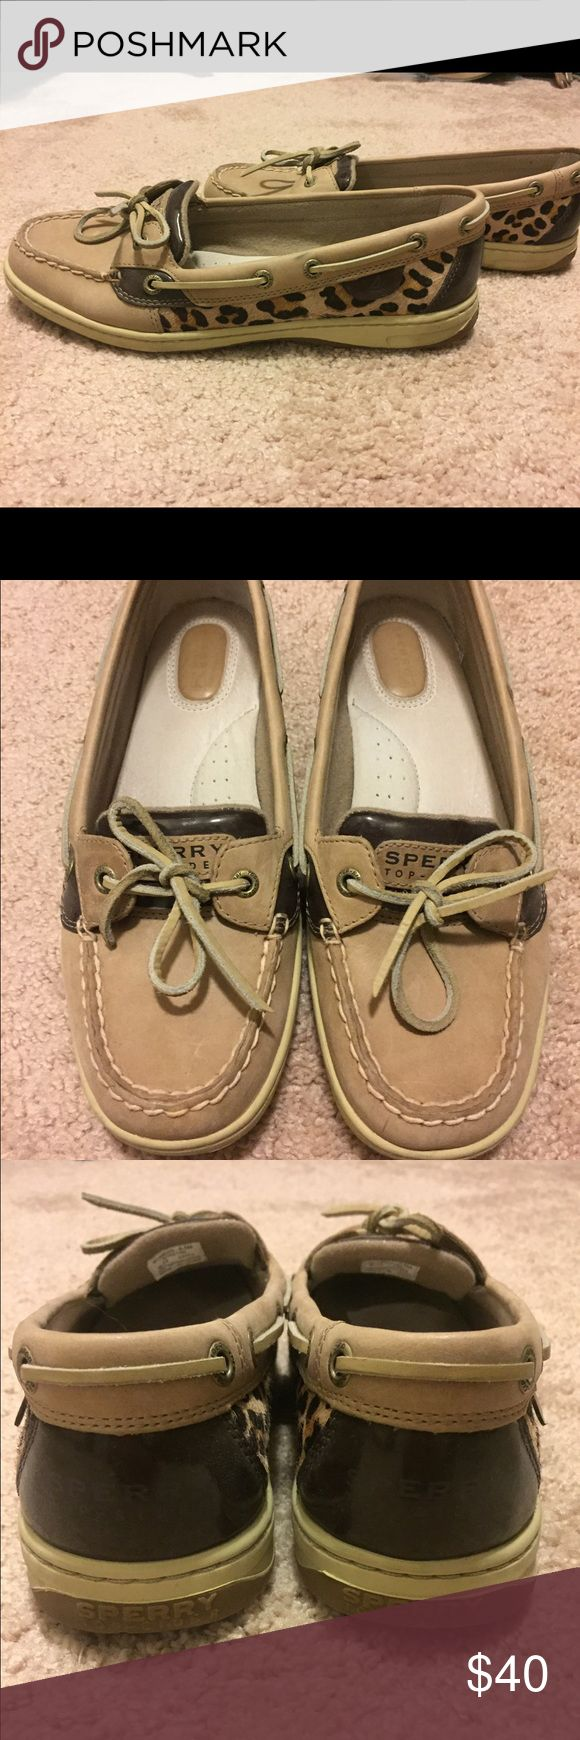 Women's Leopard Sperry Topsiders Excellent condition! Only worn a few times. Sperry Top-Sider Shoes Flats & Loafers